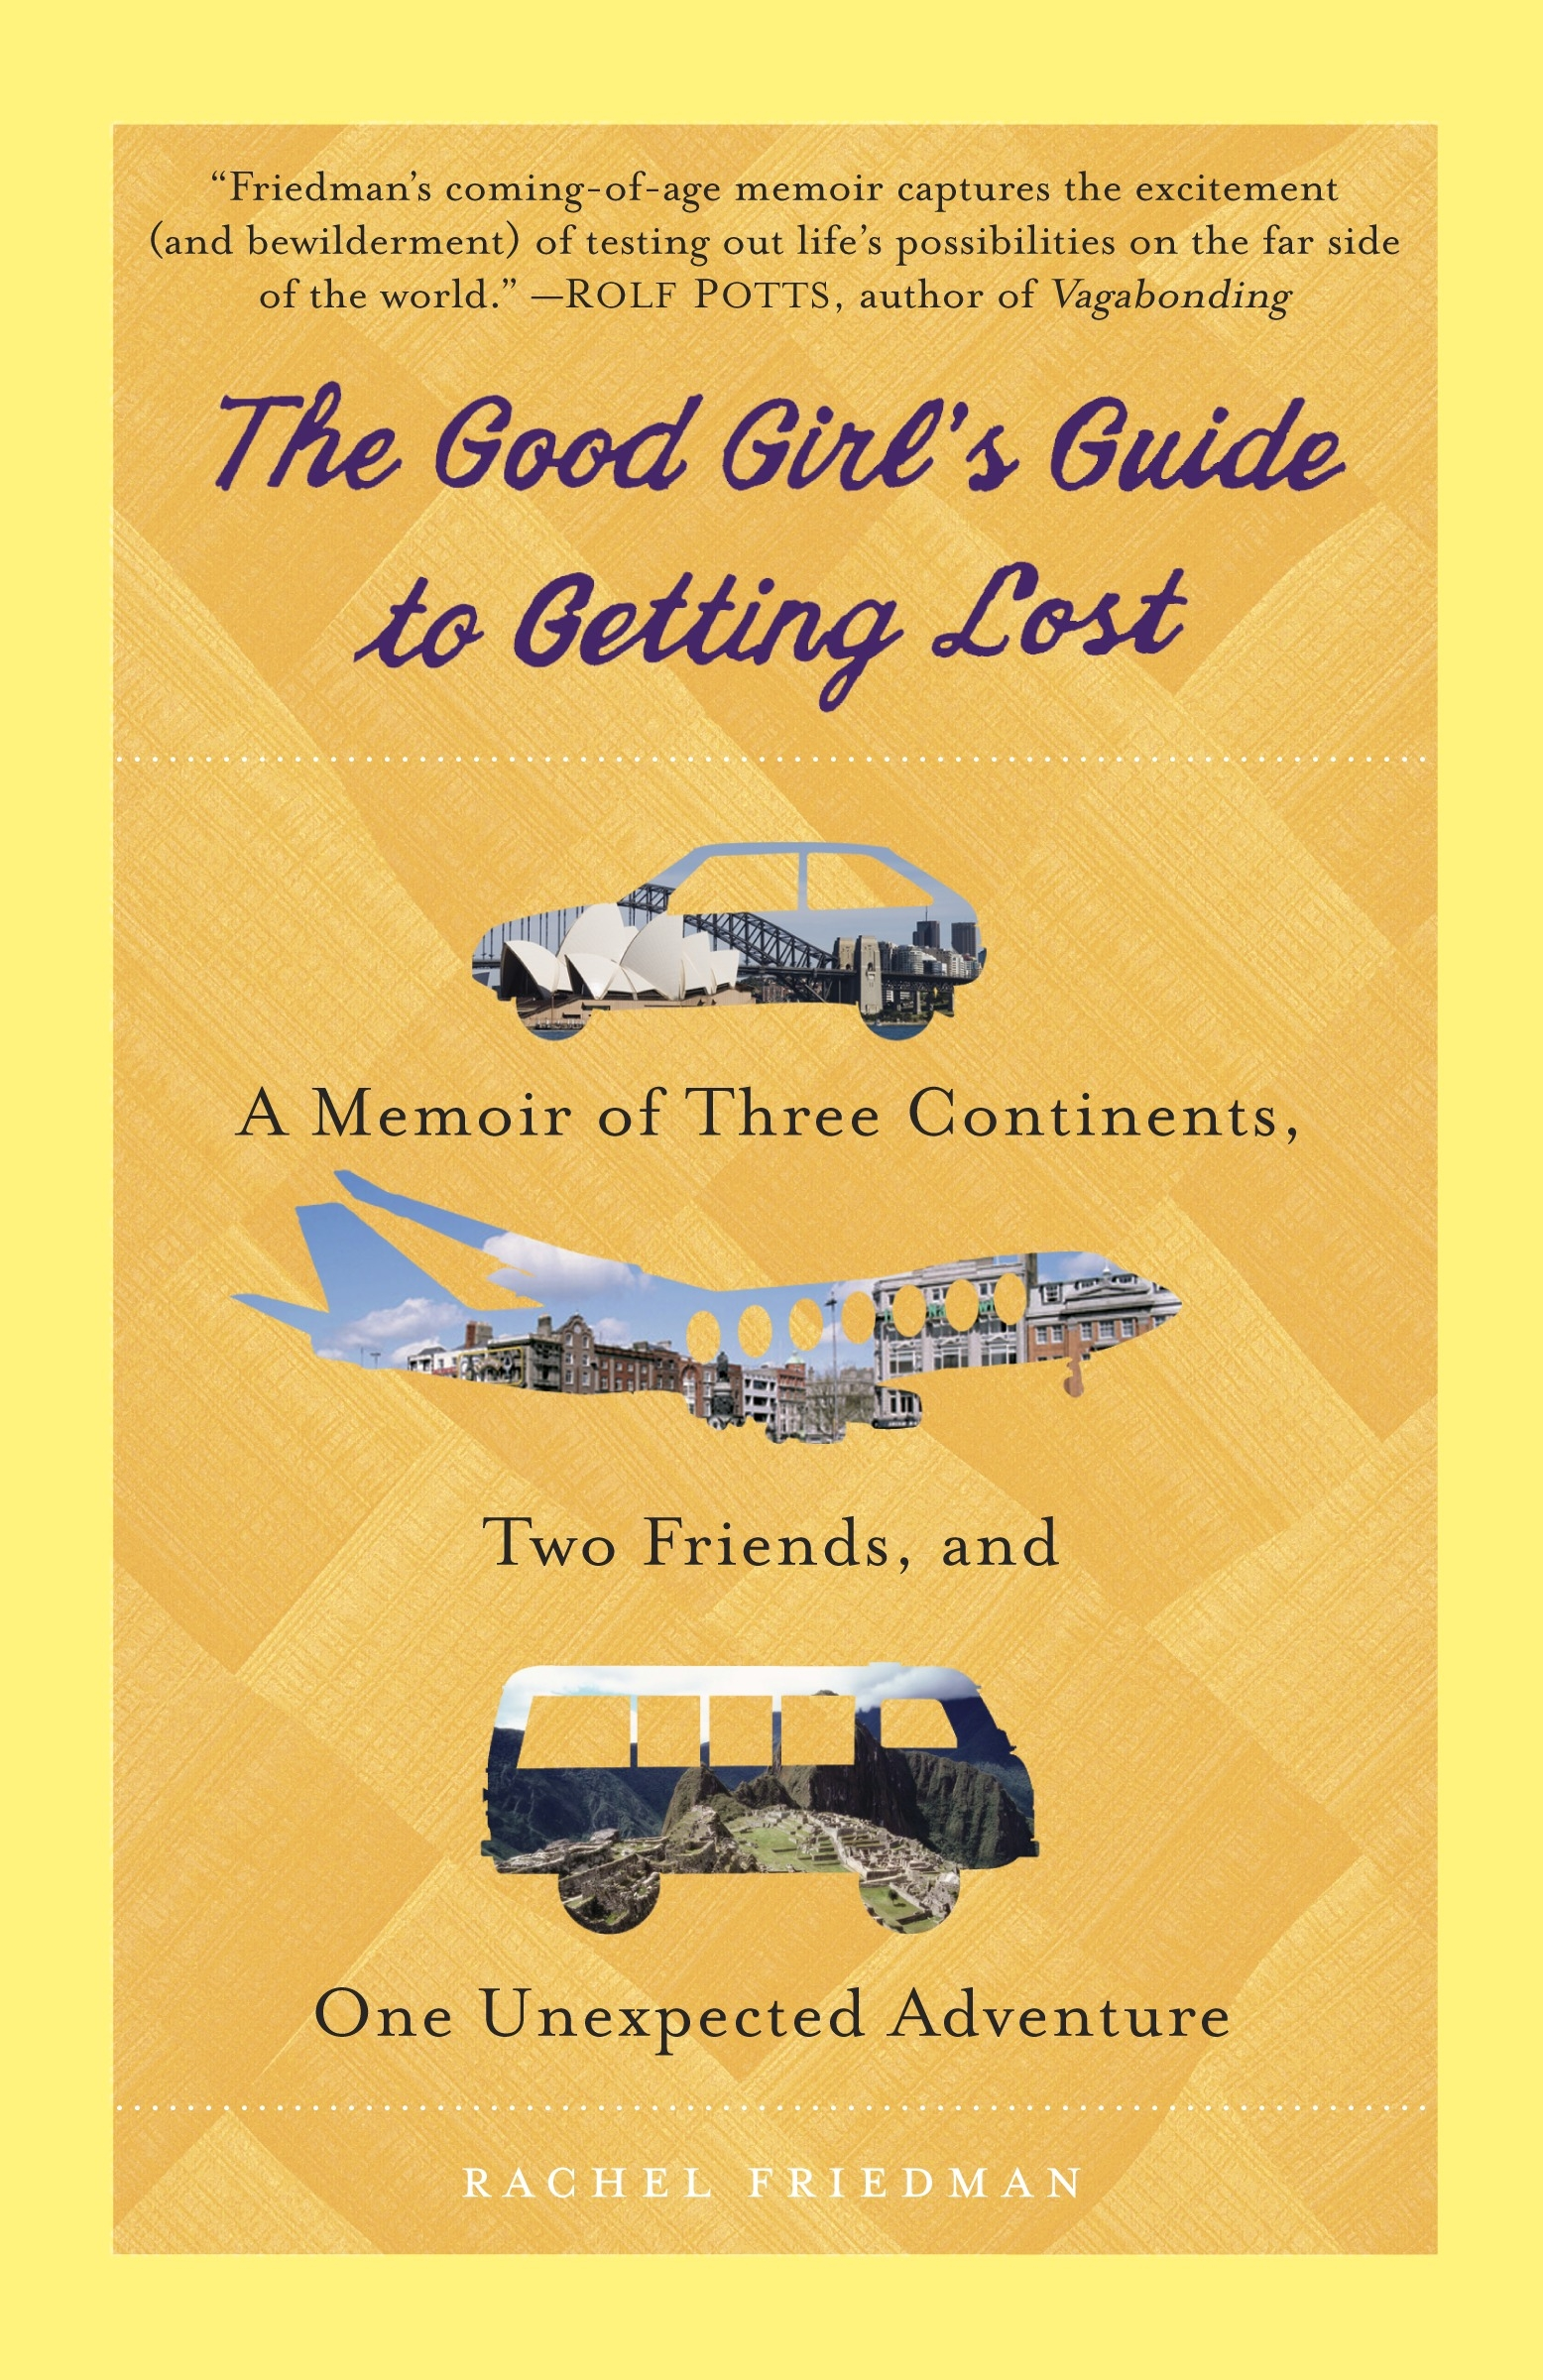 The Good Girl's Guide To Getting Lost by Rachel Friedman, ISBN: 9780385343374